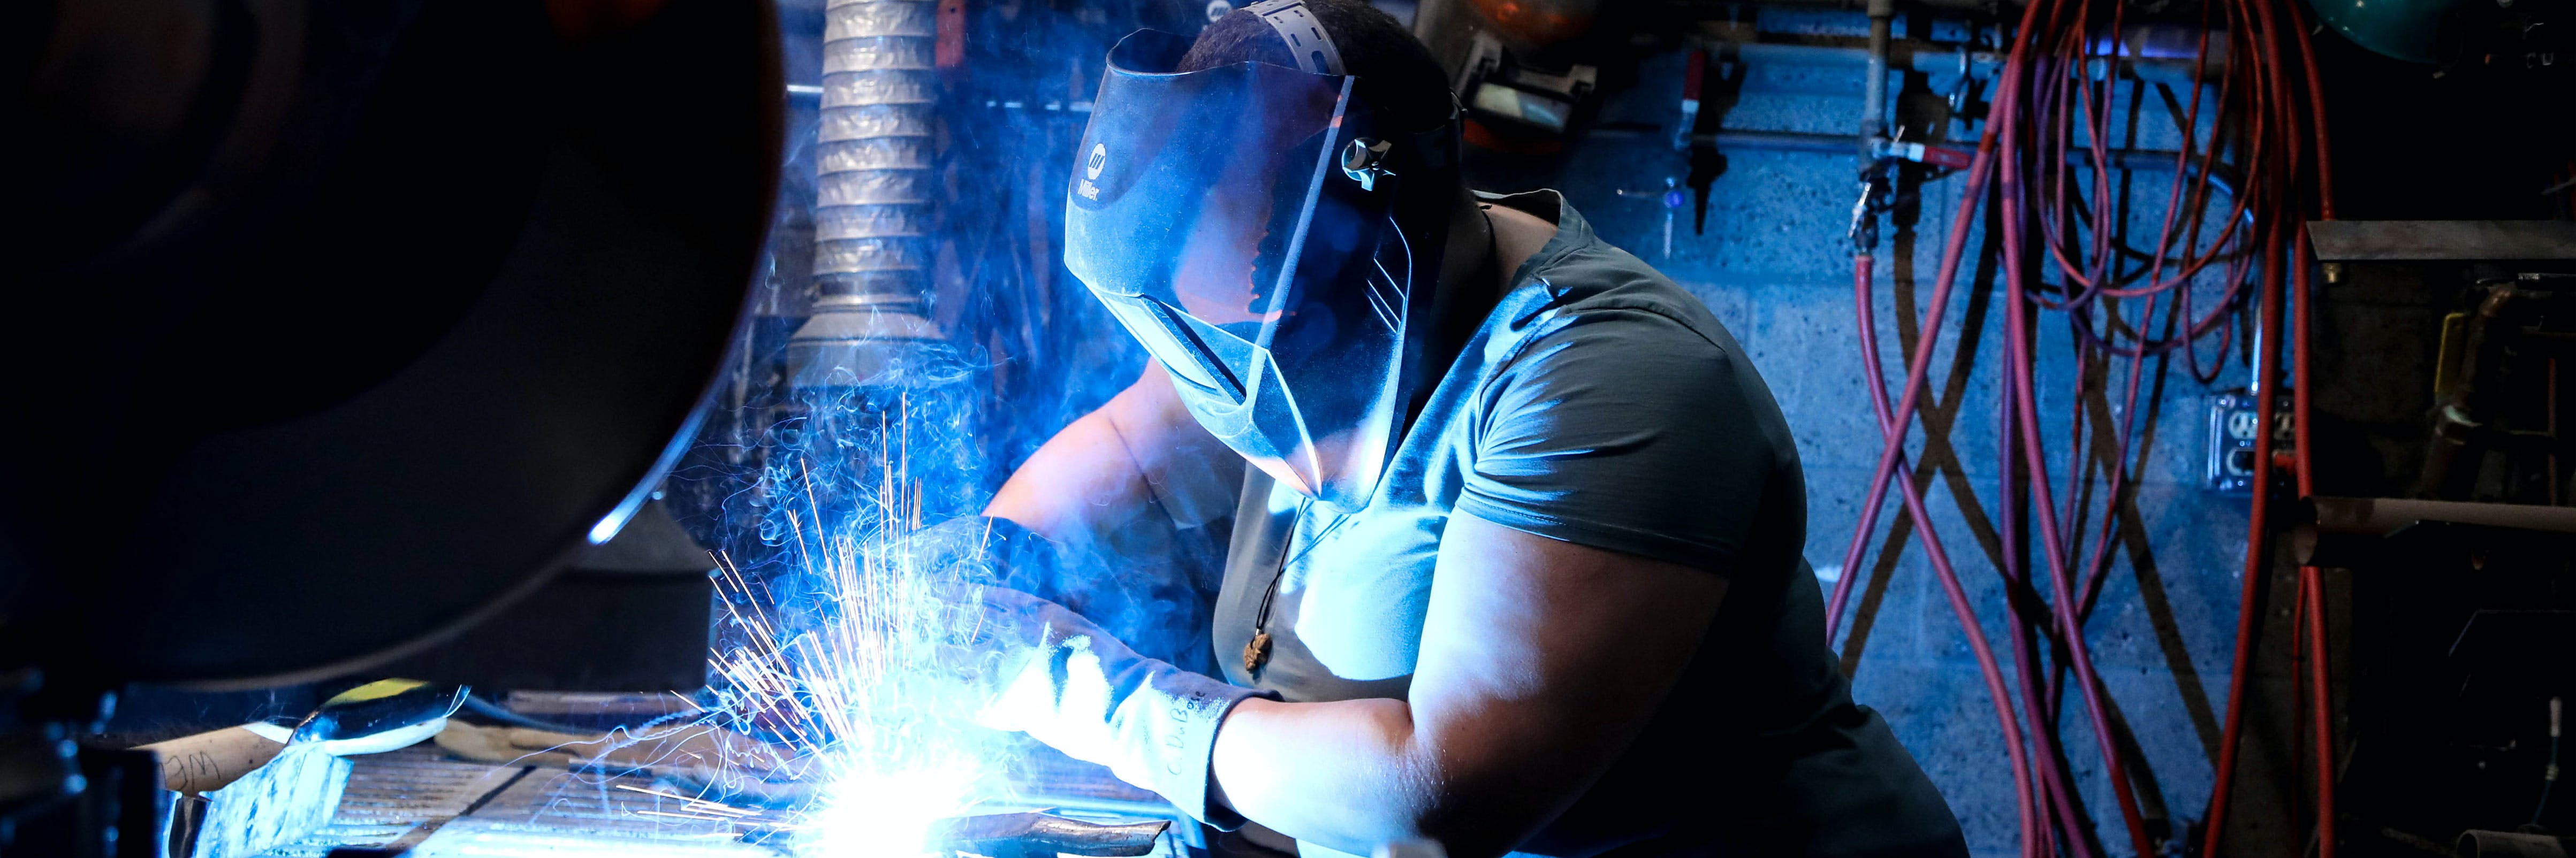 student in welding studio